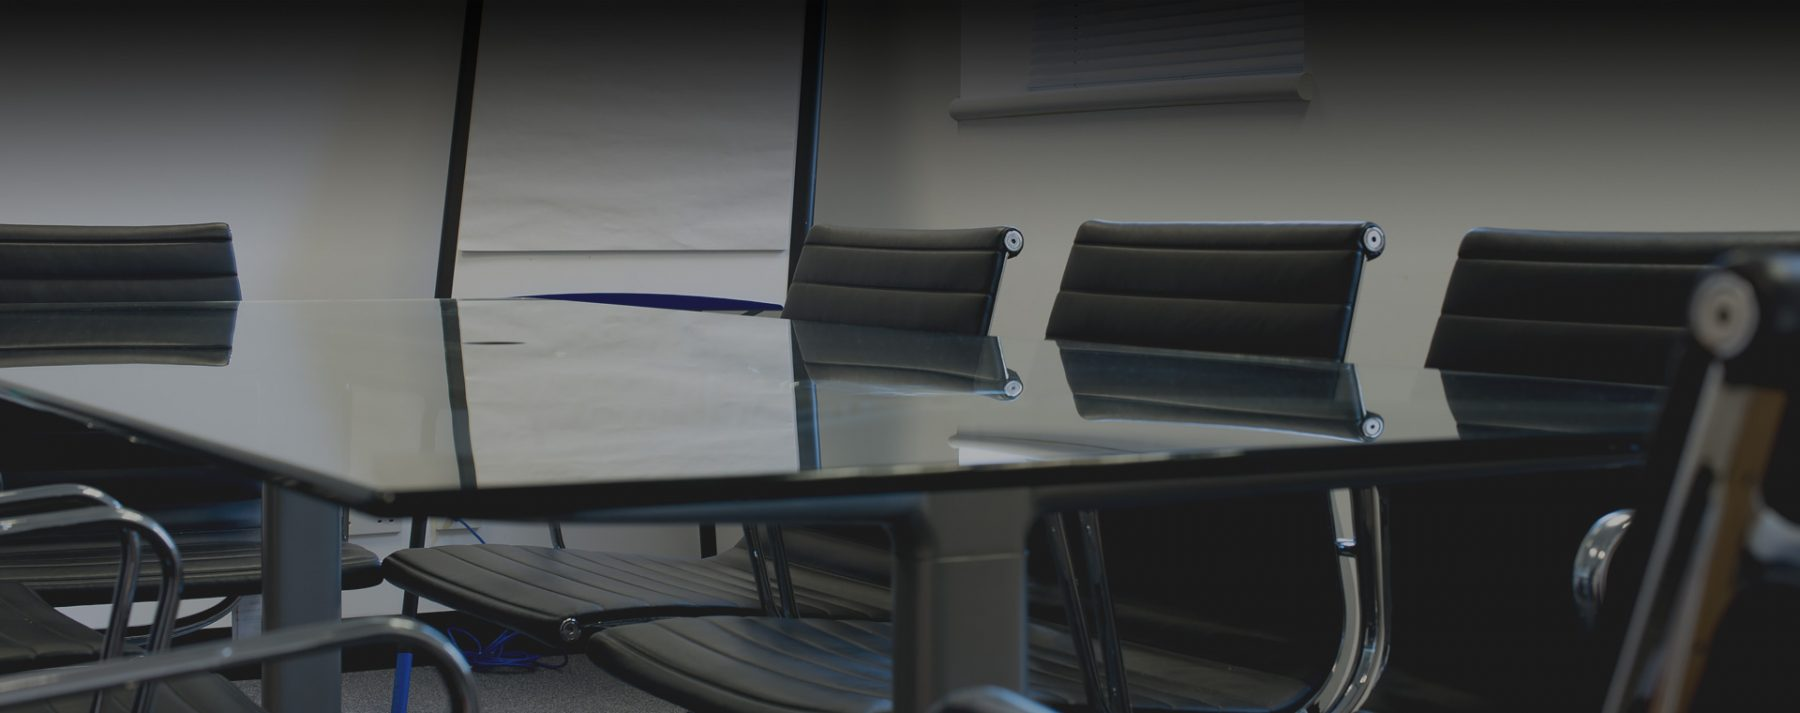 Halcyon Offices, Leatherhead, Connect & trident House, Serviced & Virtual Office Services, Meeting Room